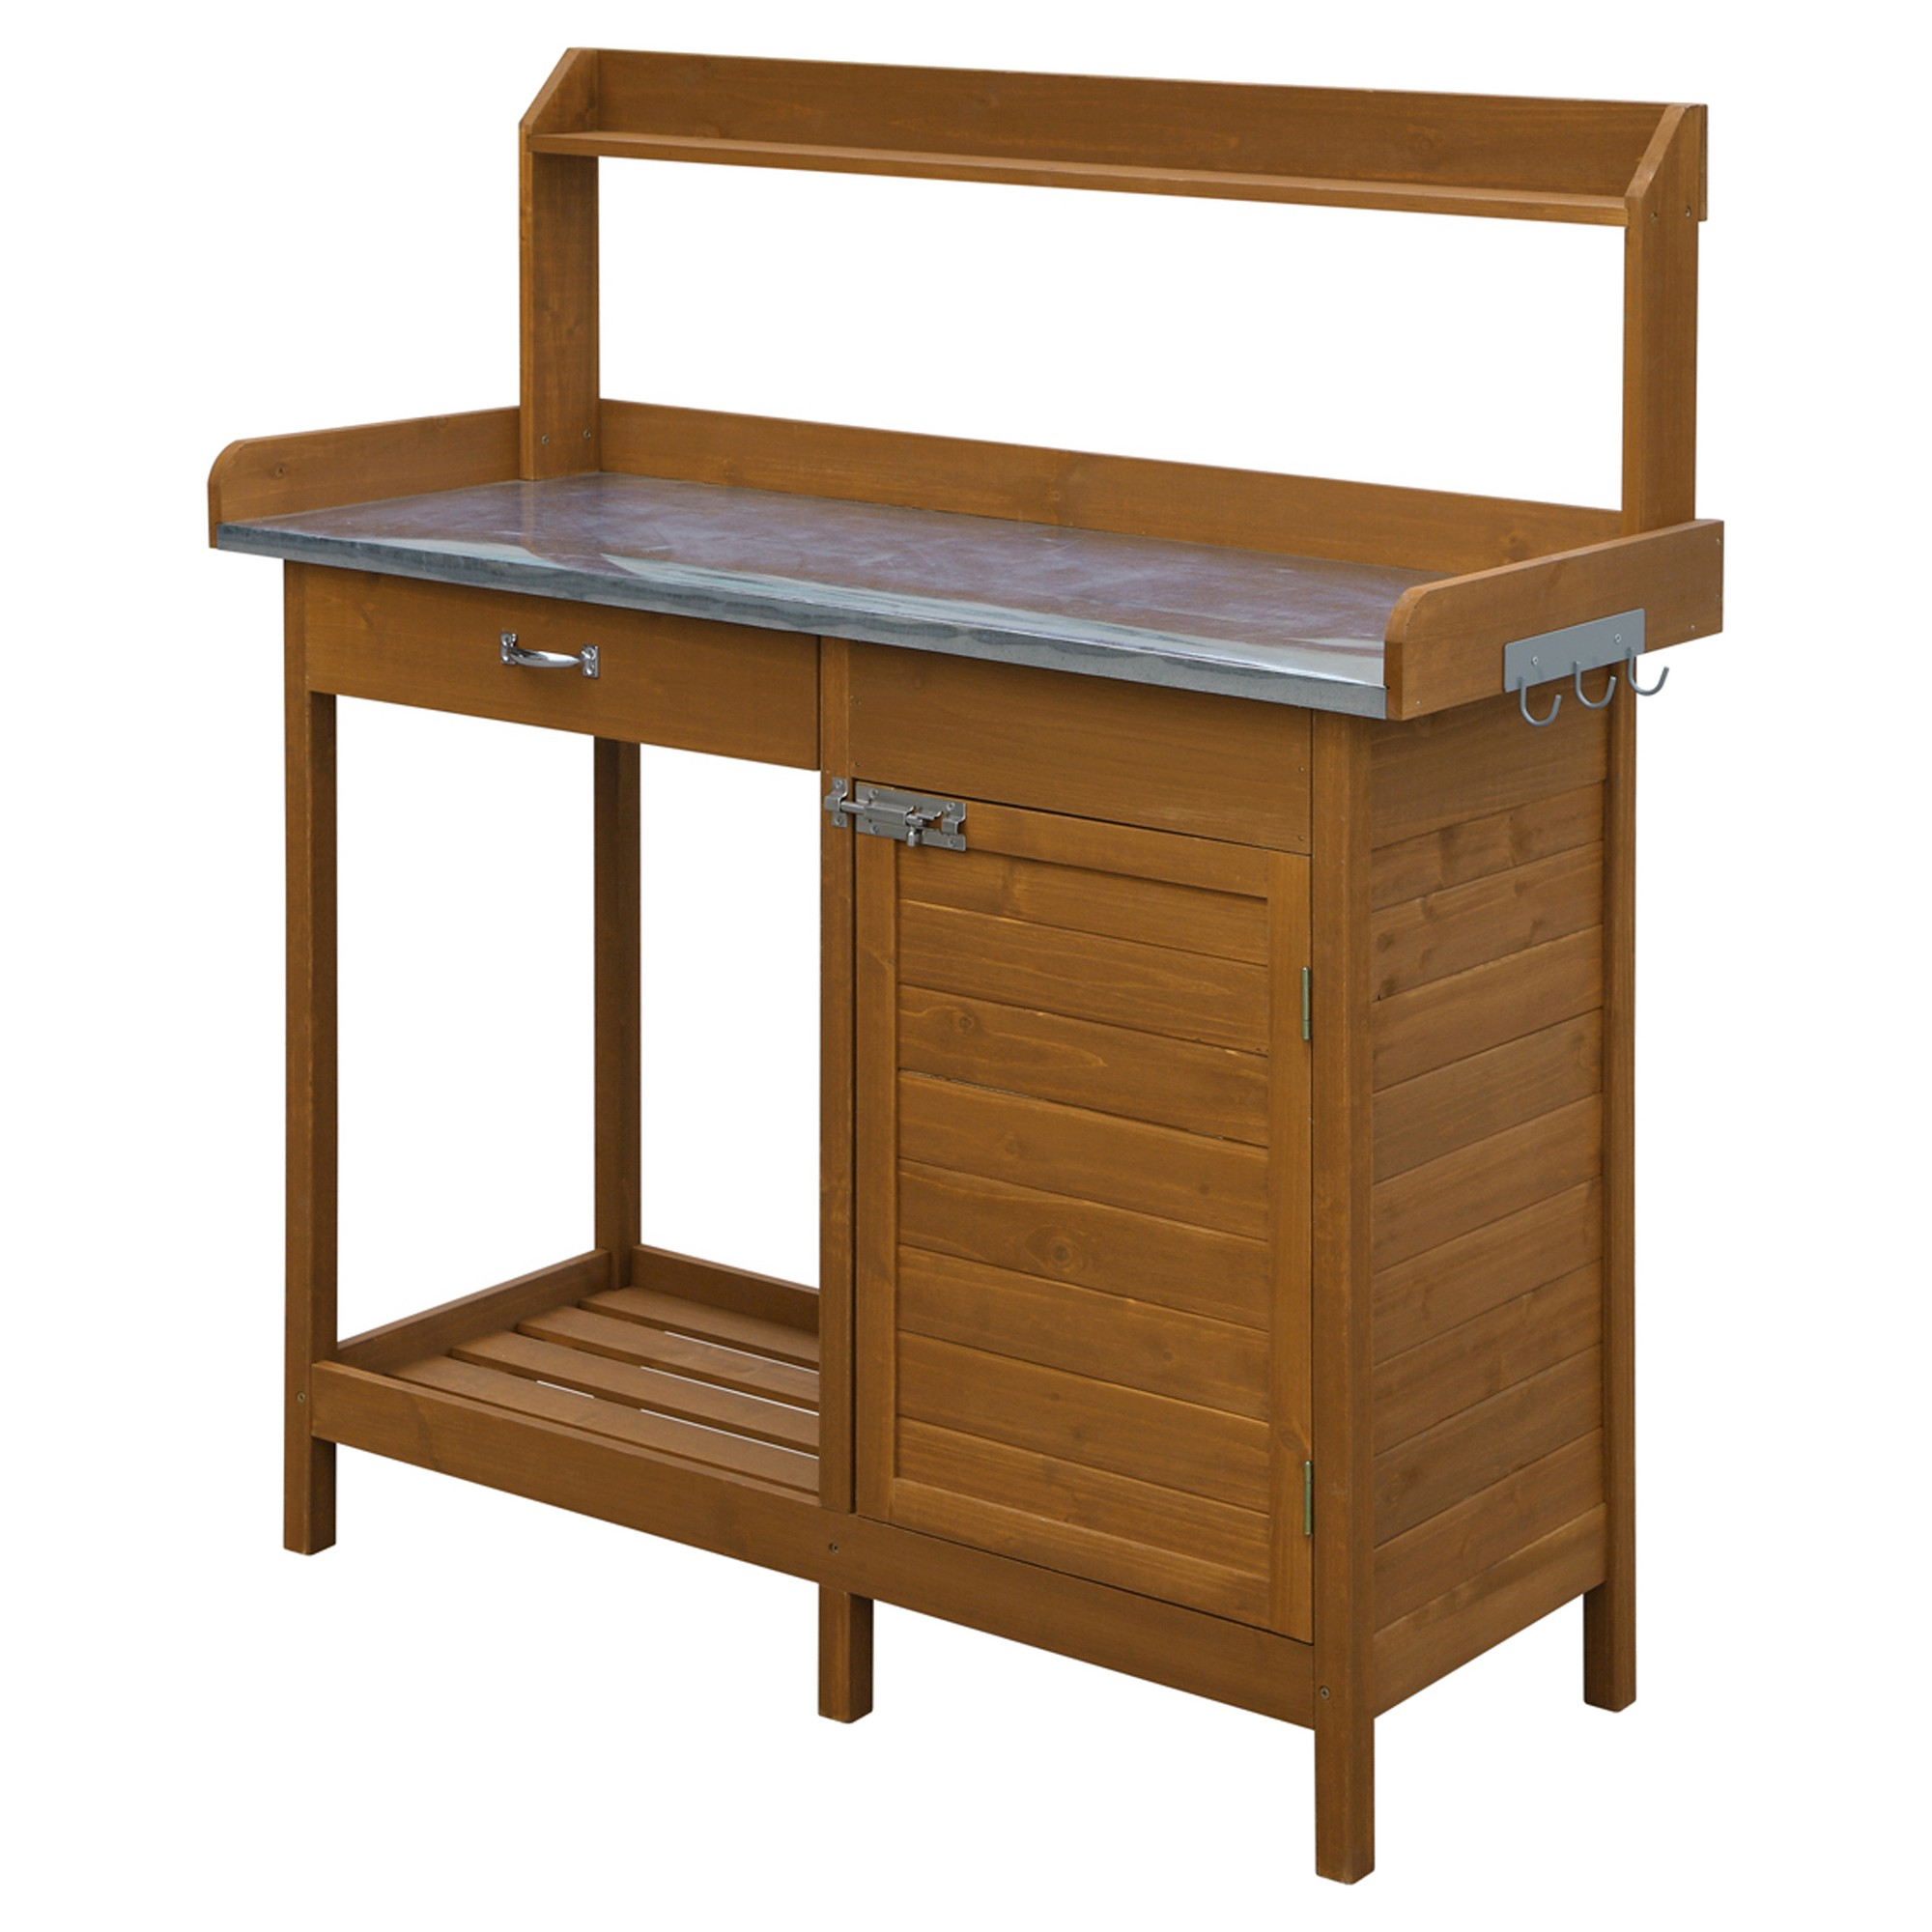 Surprising Deluxe Potting Bench Brown Convenience Products Gmtry Best Dining Table And Chair Ideas Images Gmtryco